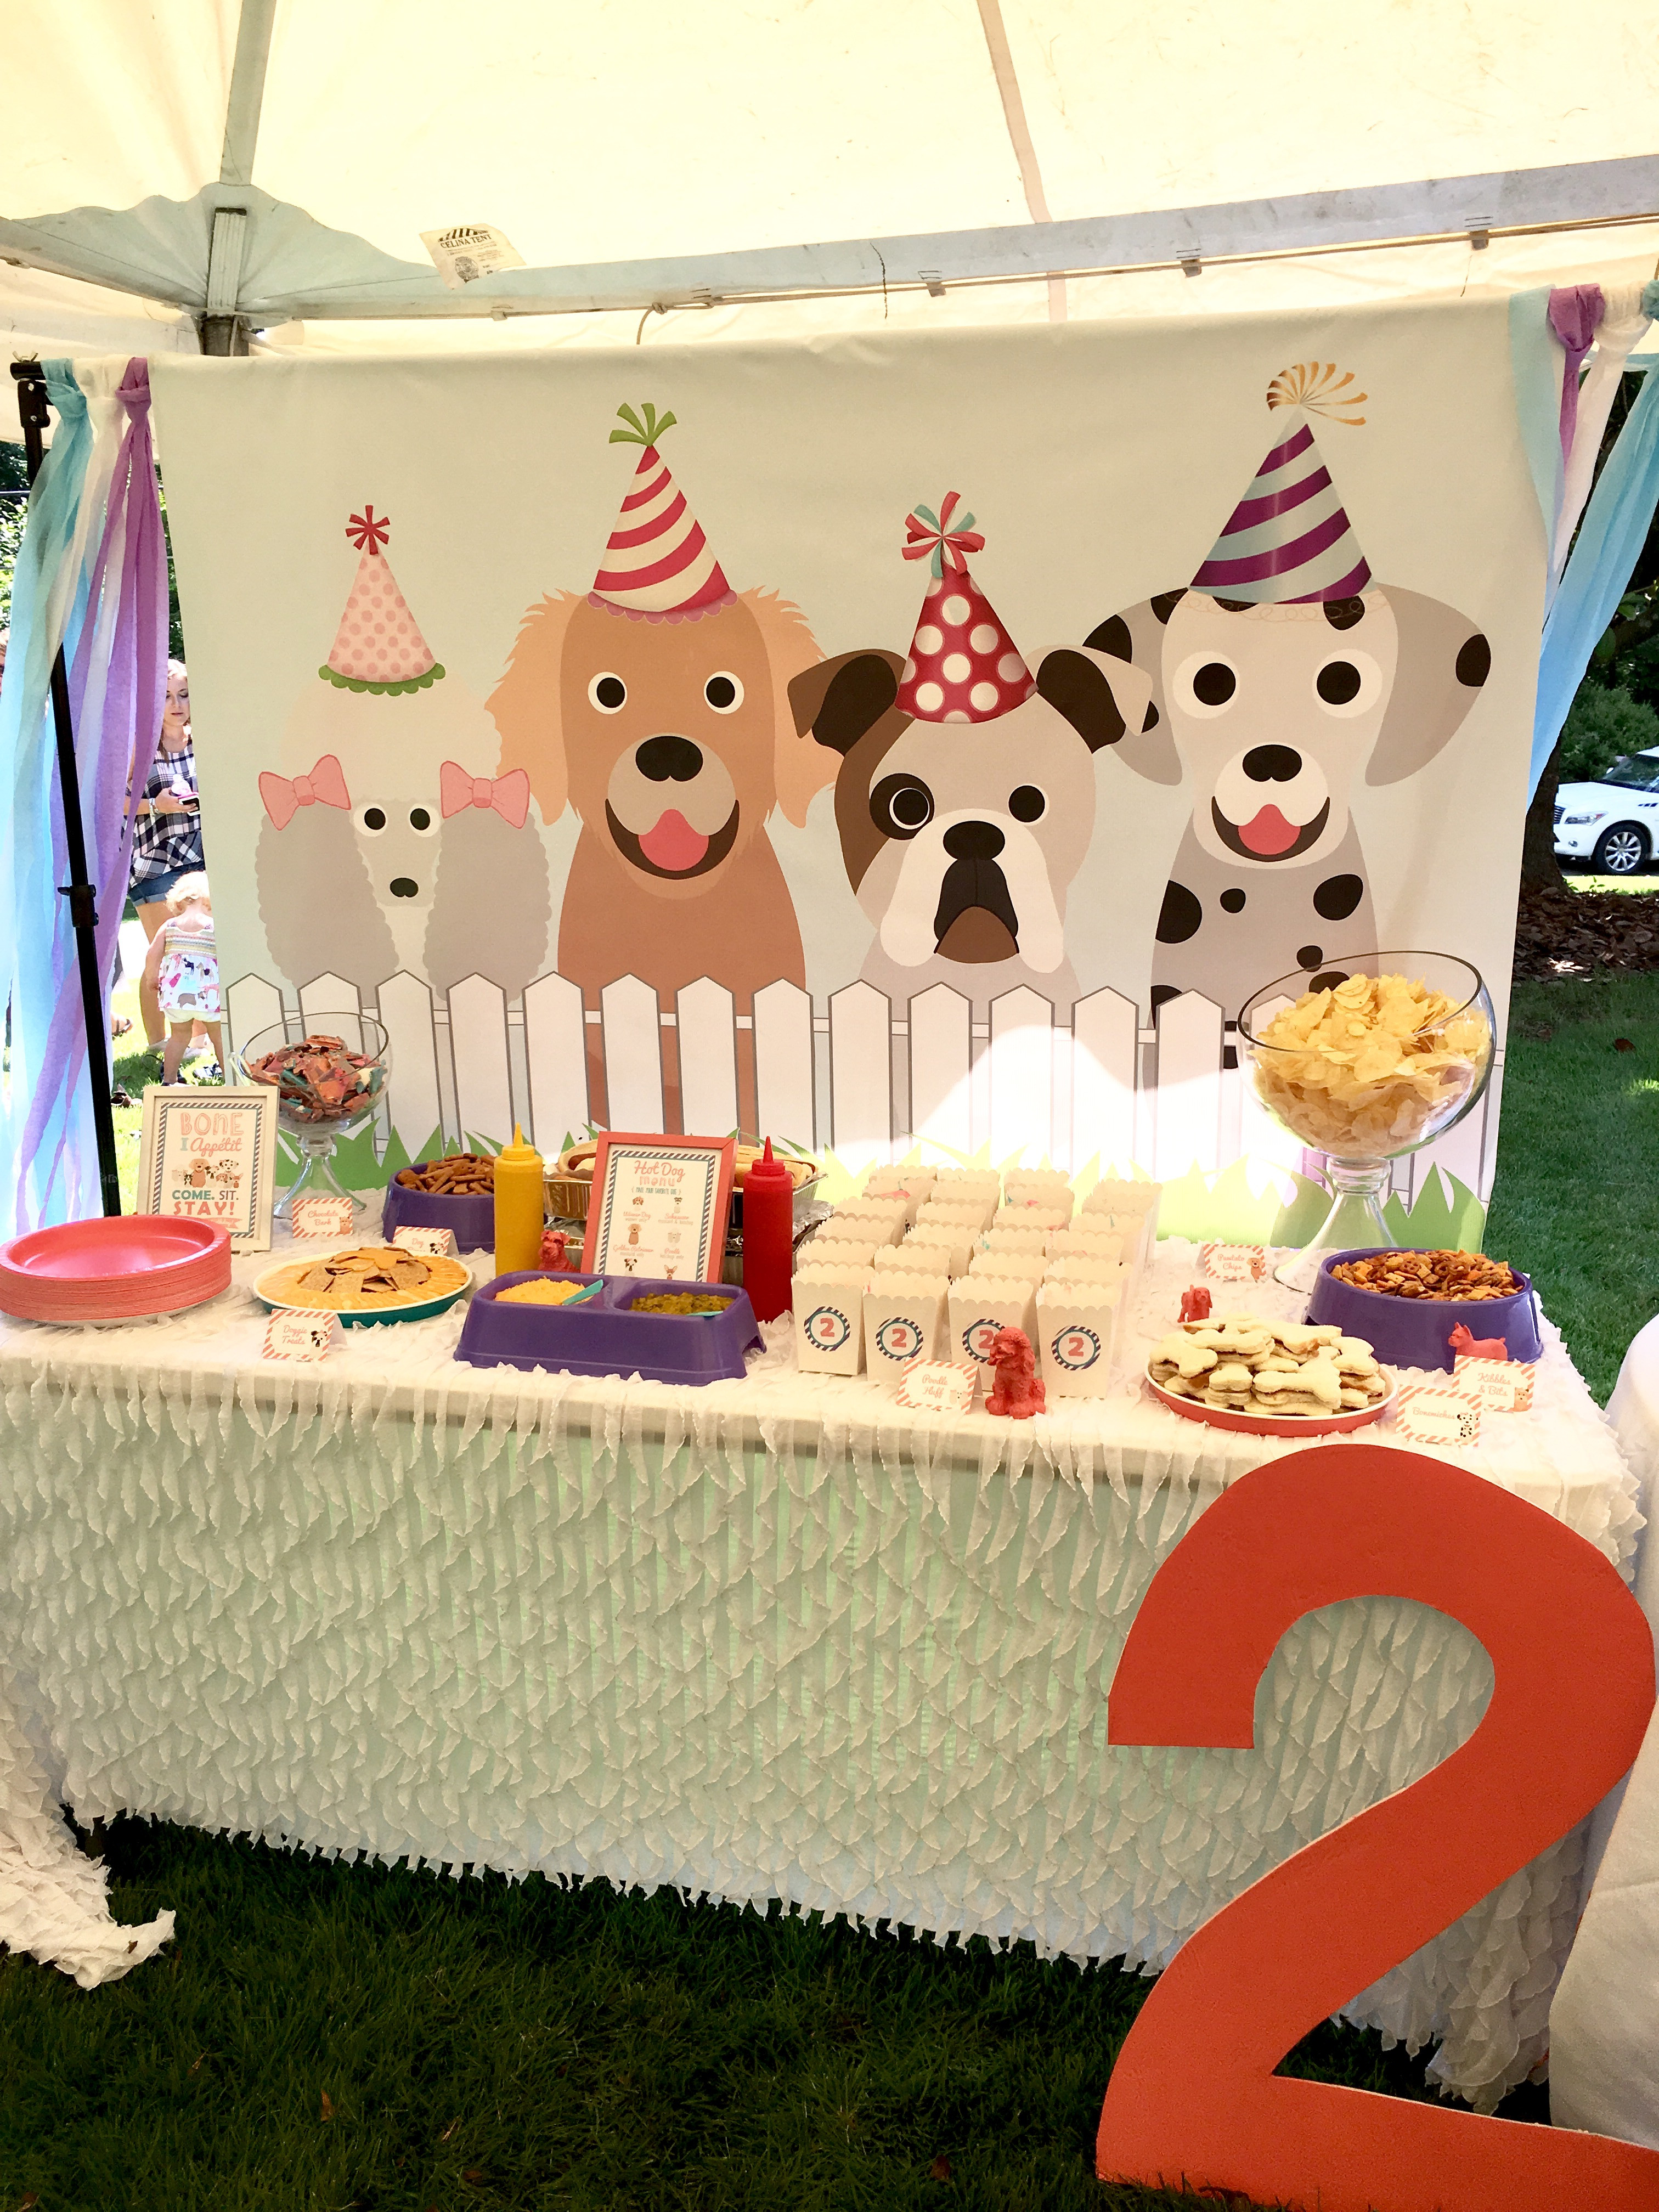 Best ideas about Dog Birthday Decorations . Save or Pin Carolyne s Puppy Party Project Nursery Now.